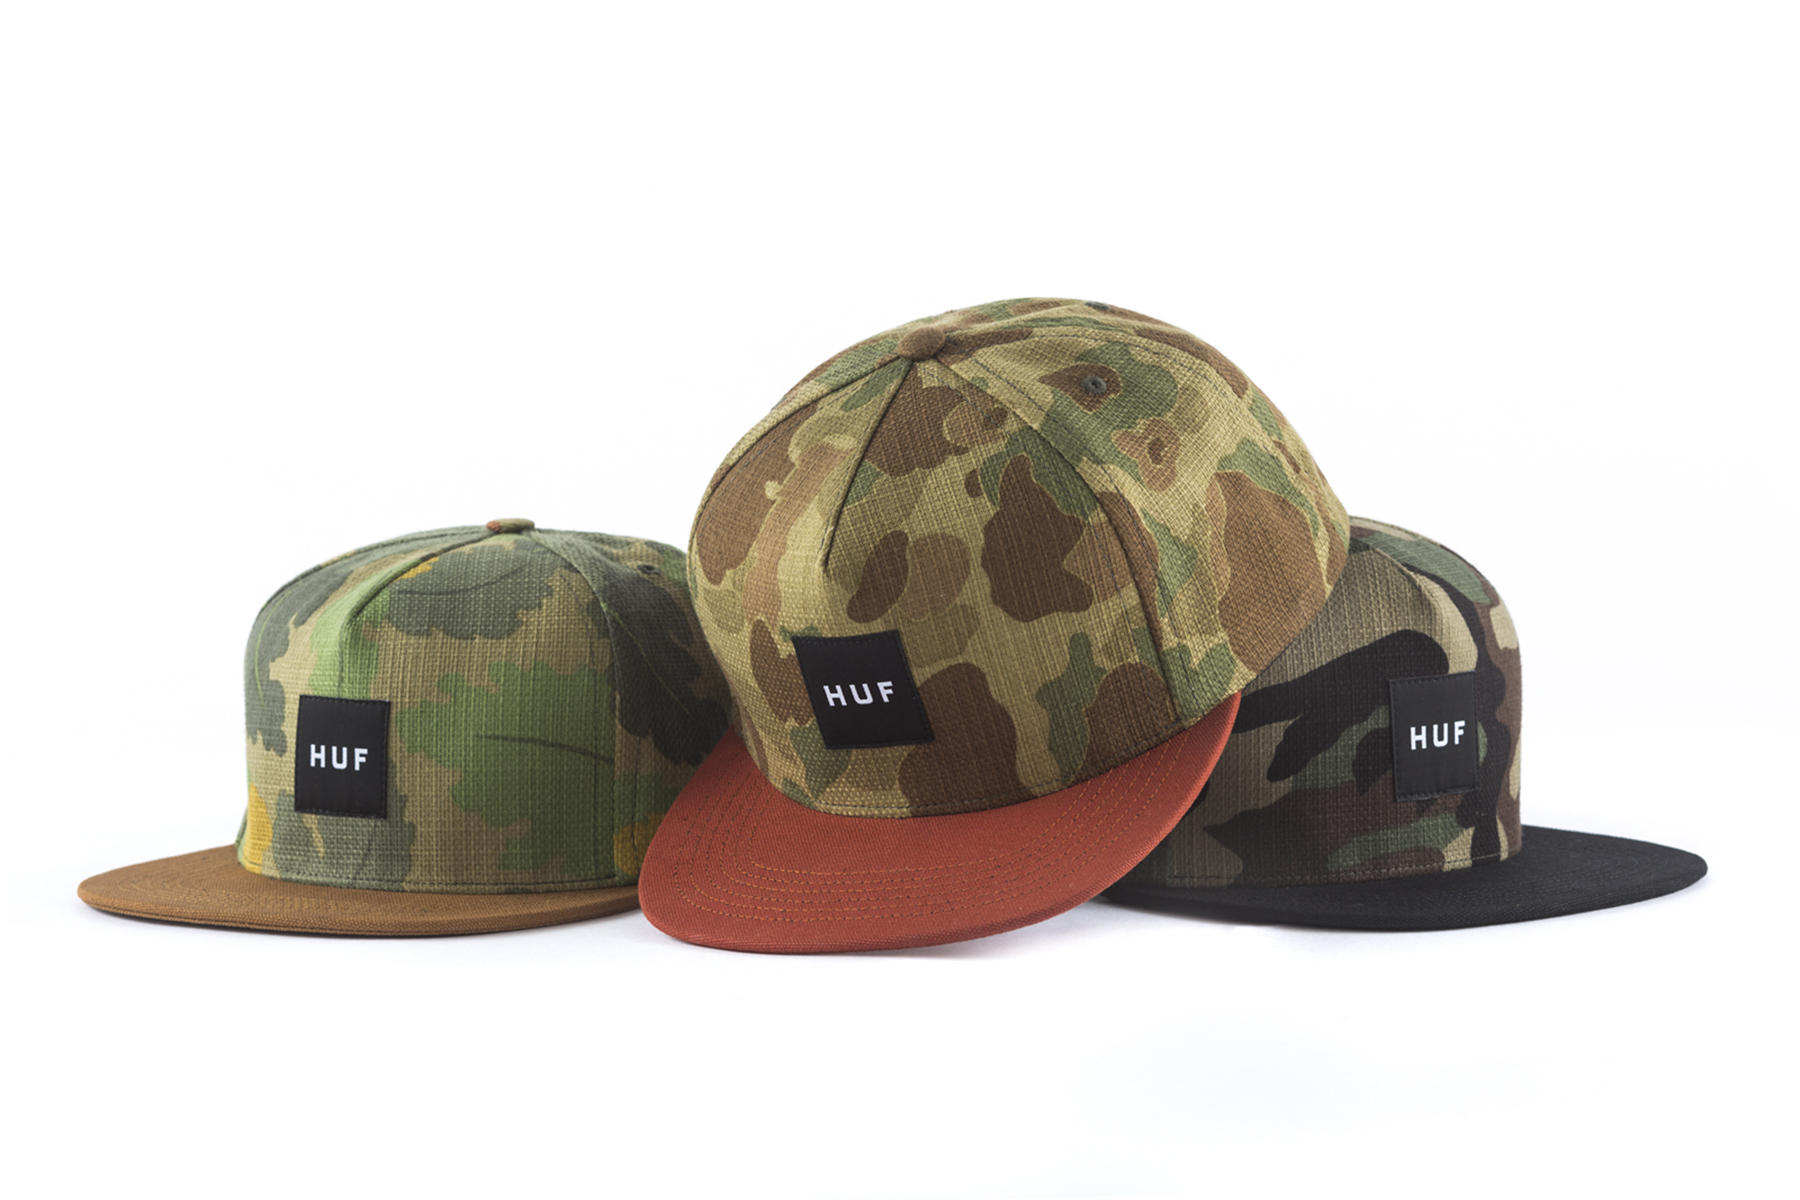 huf 2014 spring summer headwear collection